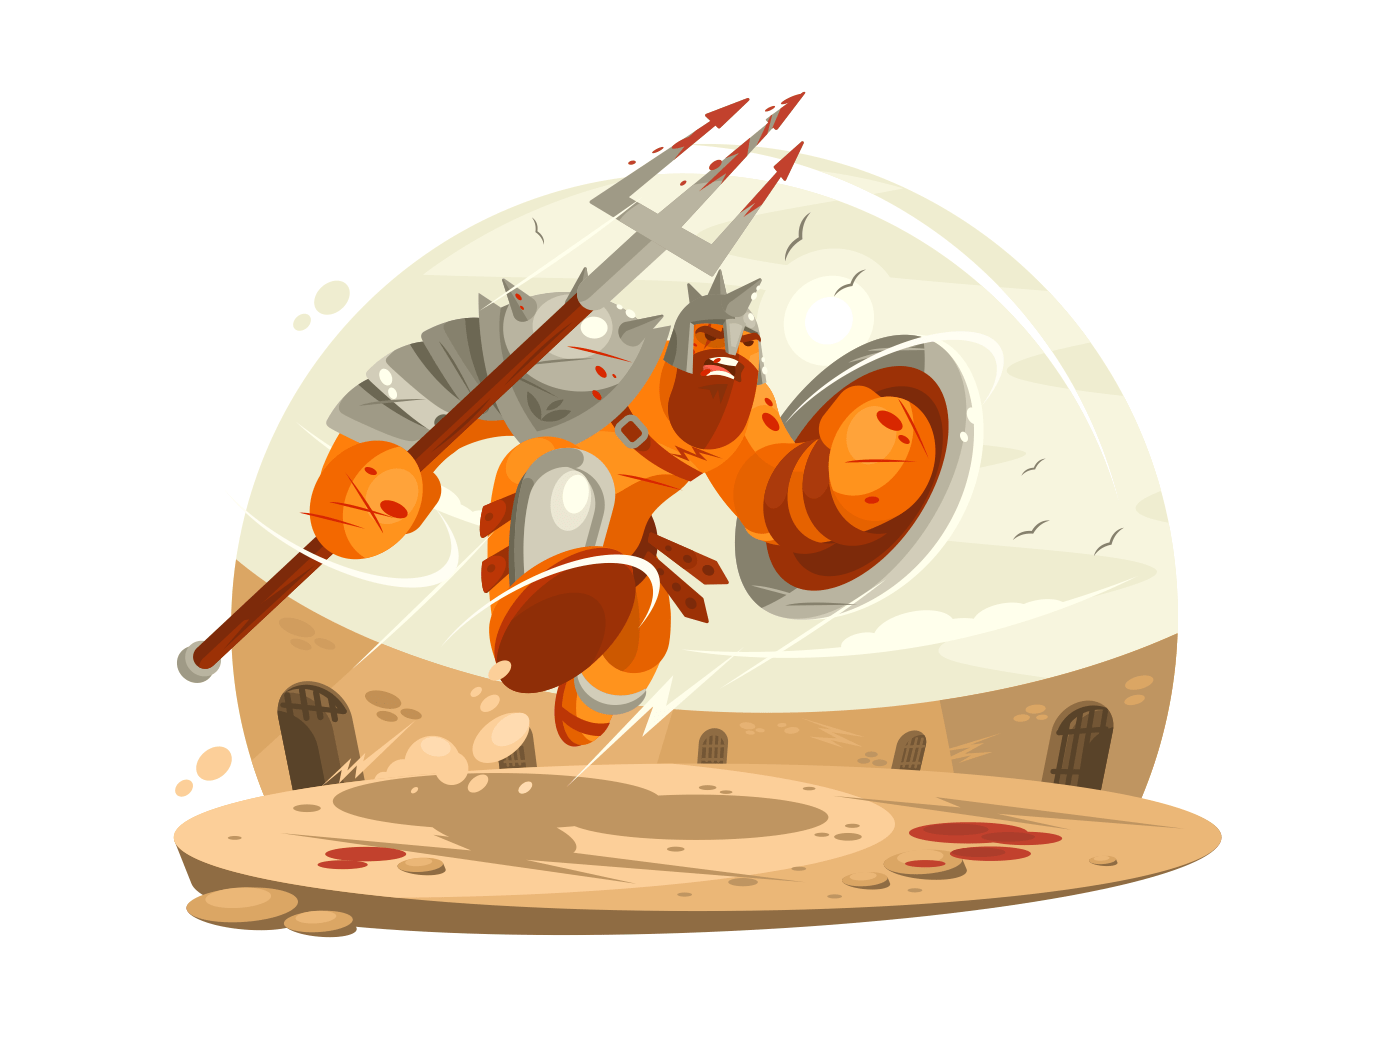 Gladiator in armor with shield illustration